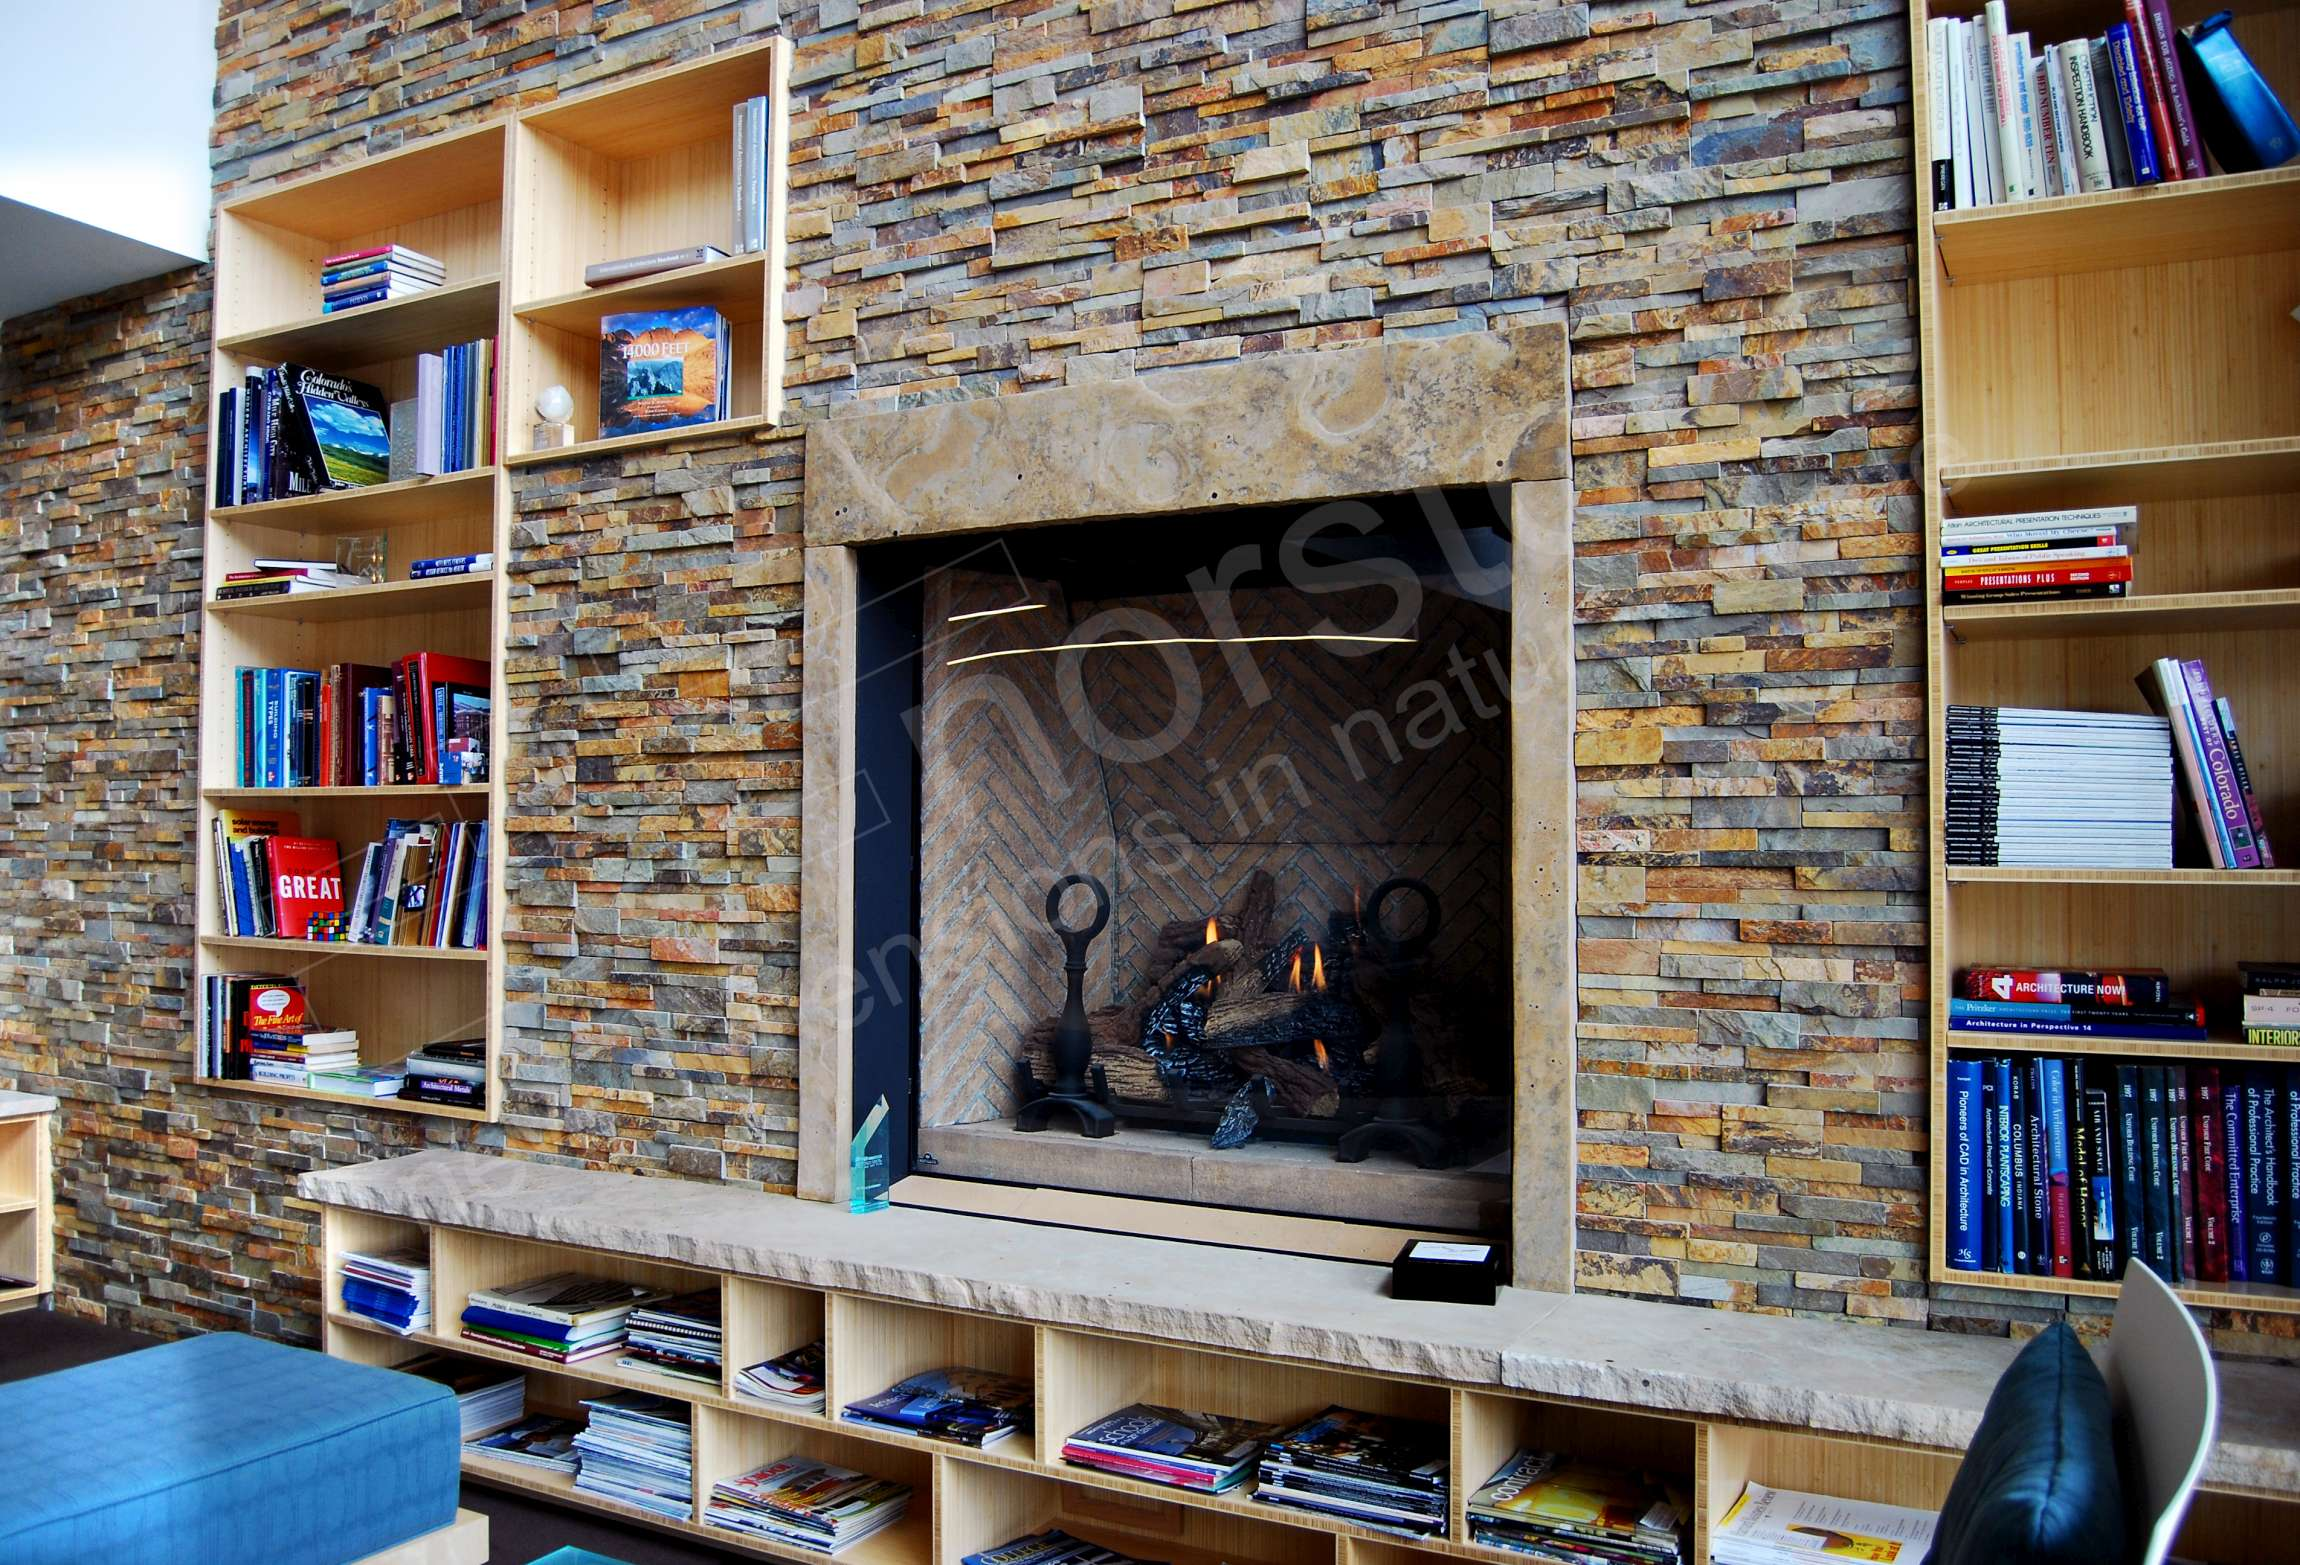 Natural Stone Veneer Fireplace with raised cut stone hearth with storage cubbies underneath it.